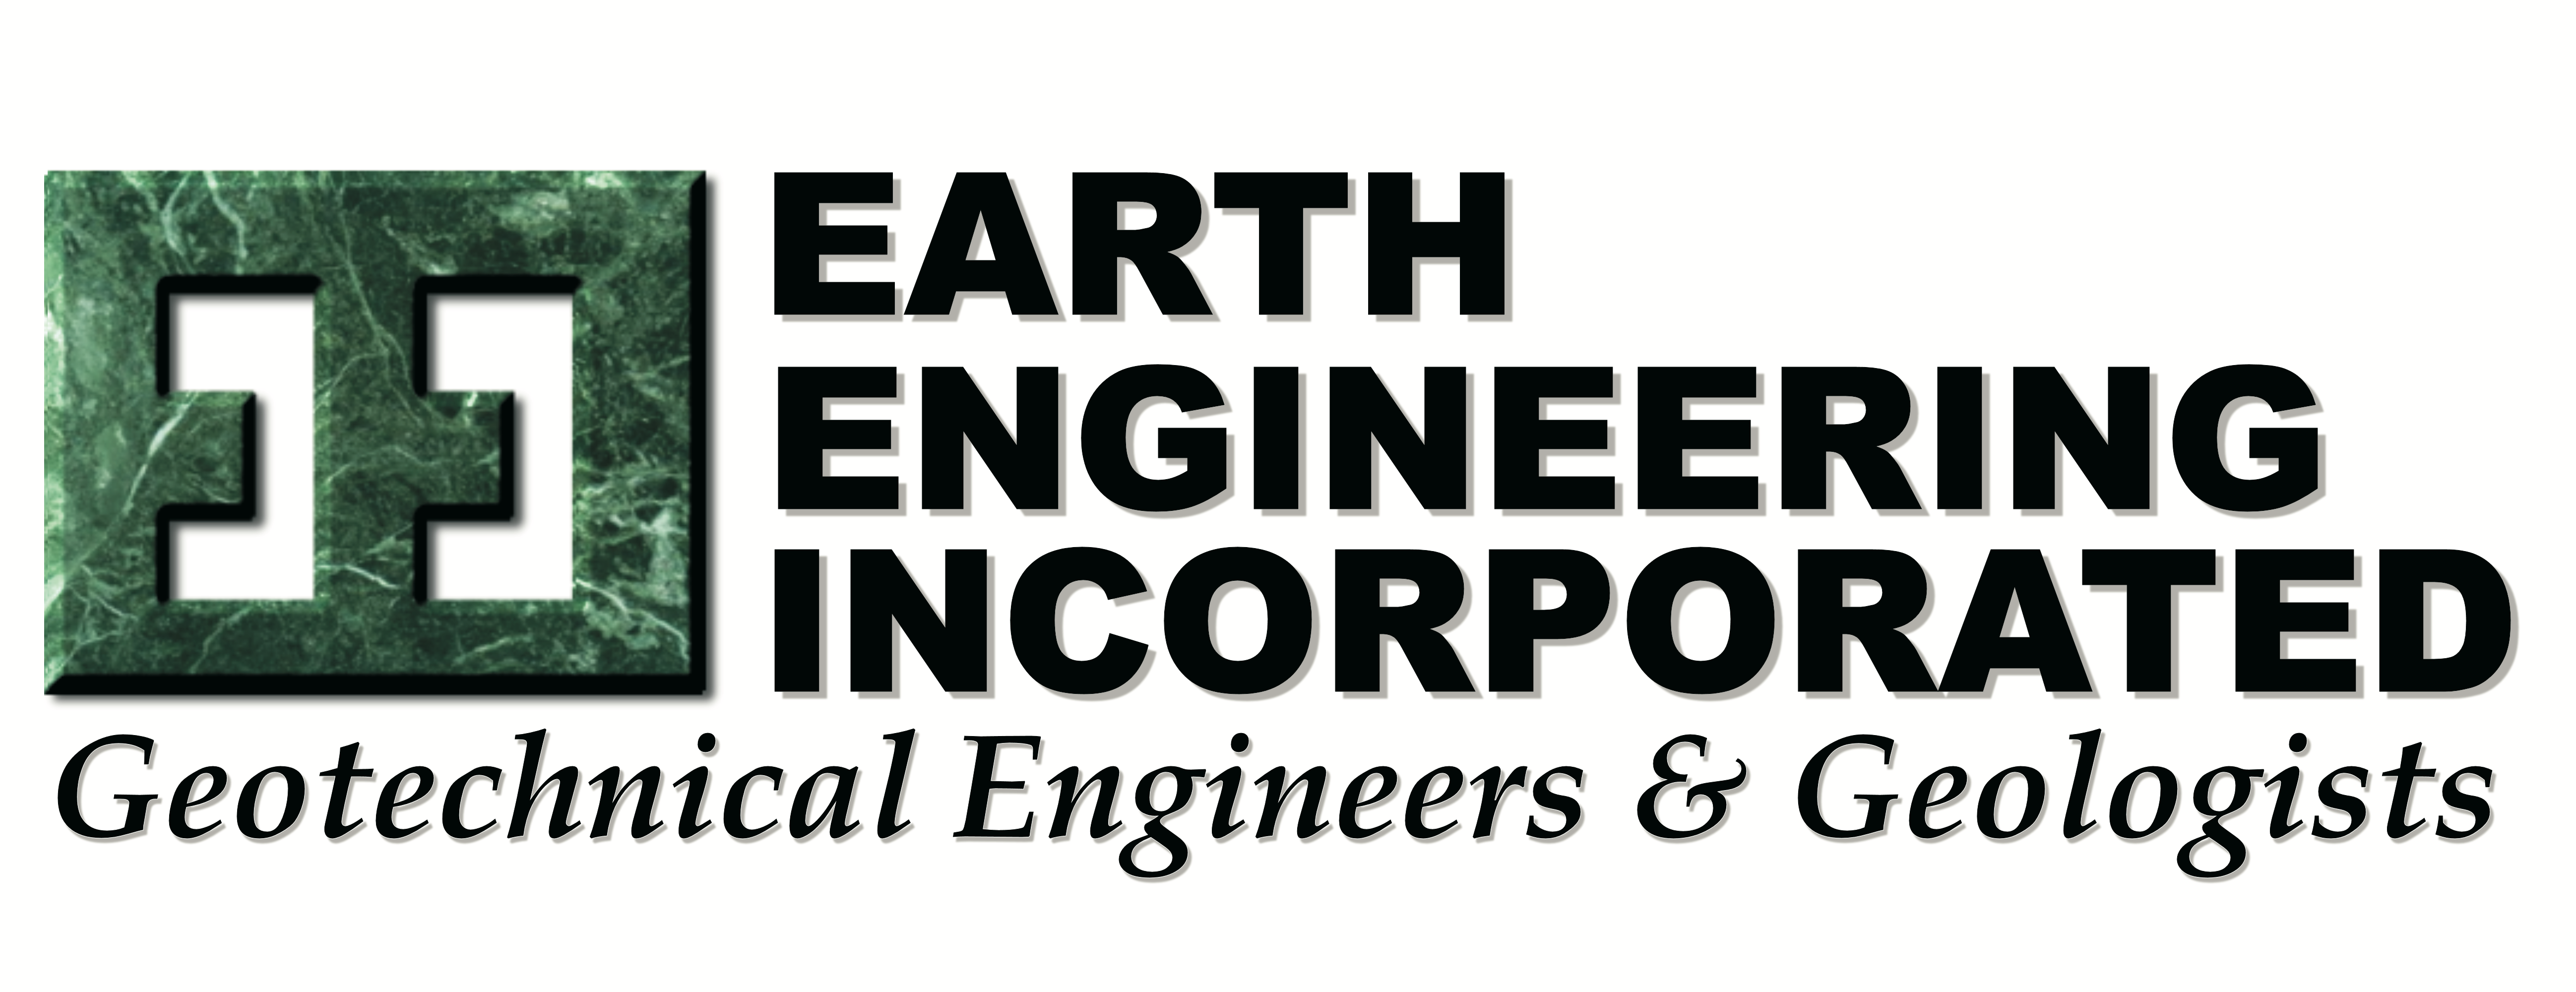 Earth Engineering Incorporated